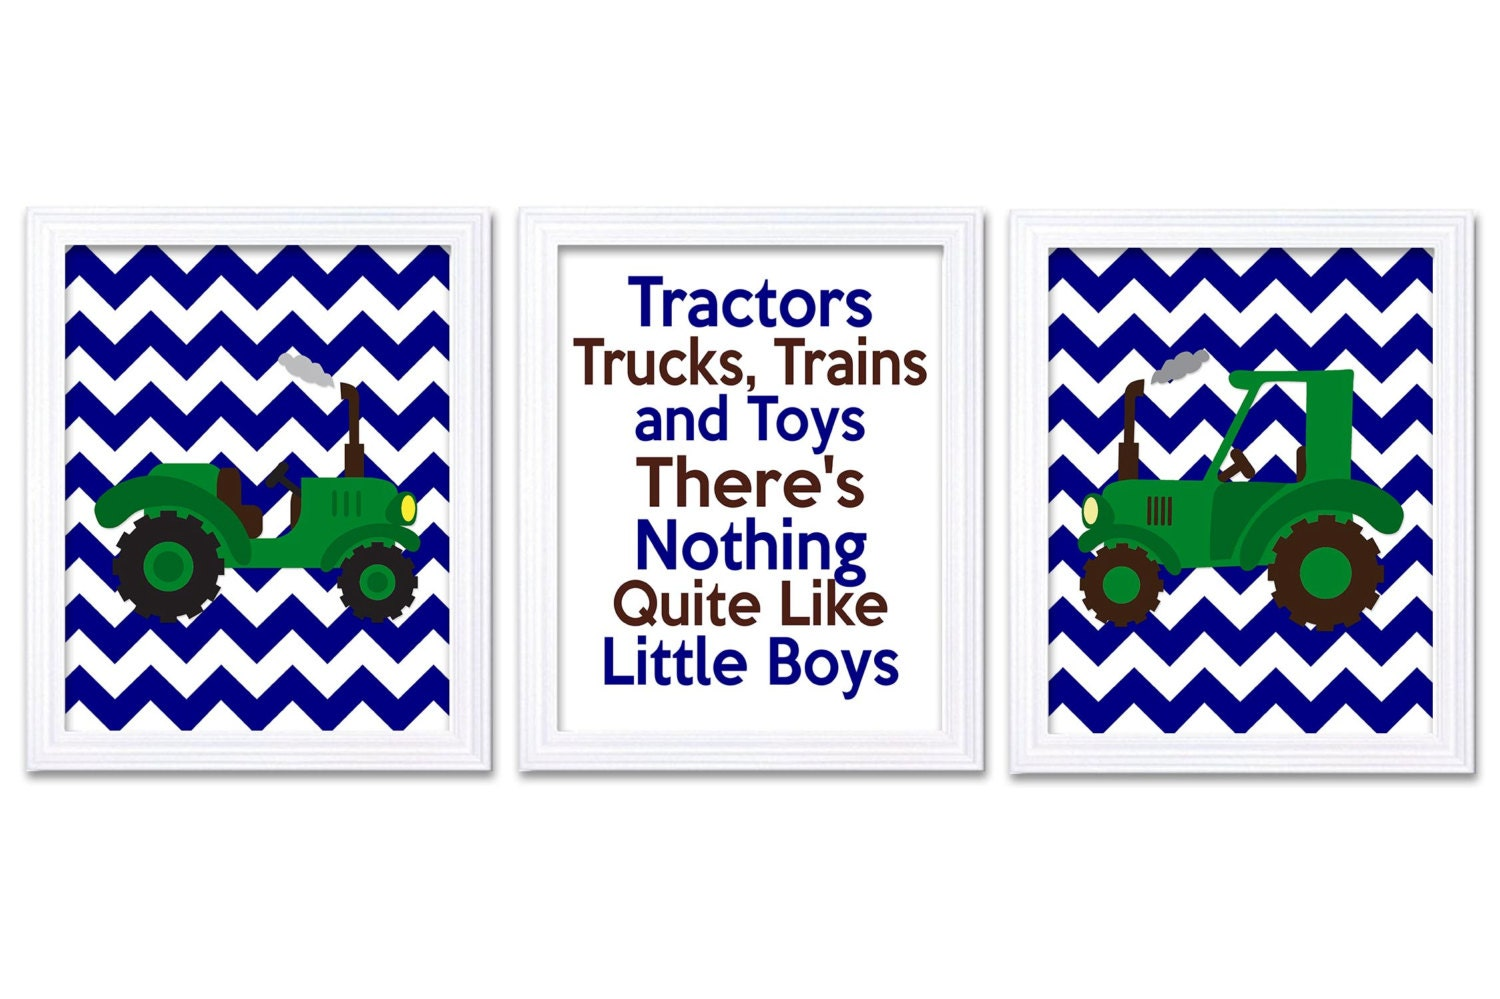 Nursery Art Tractors Trucks and Toys Theres Nothing Quite Like Little Boys Print Set of 3 Green Grey